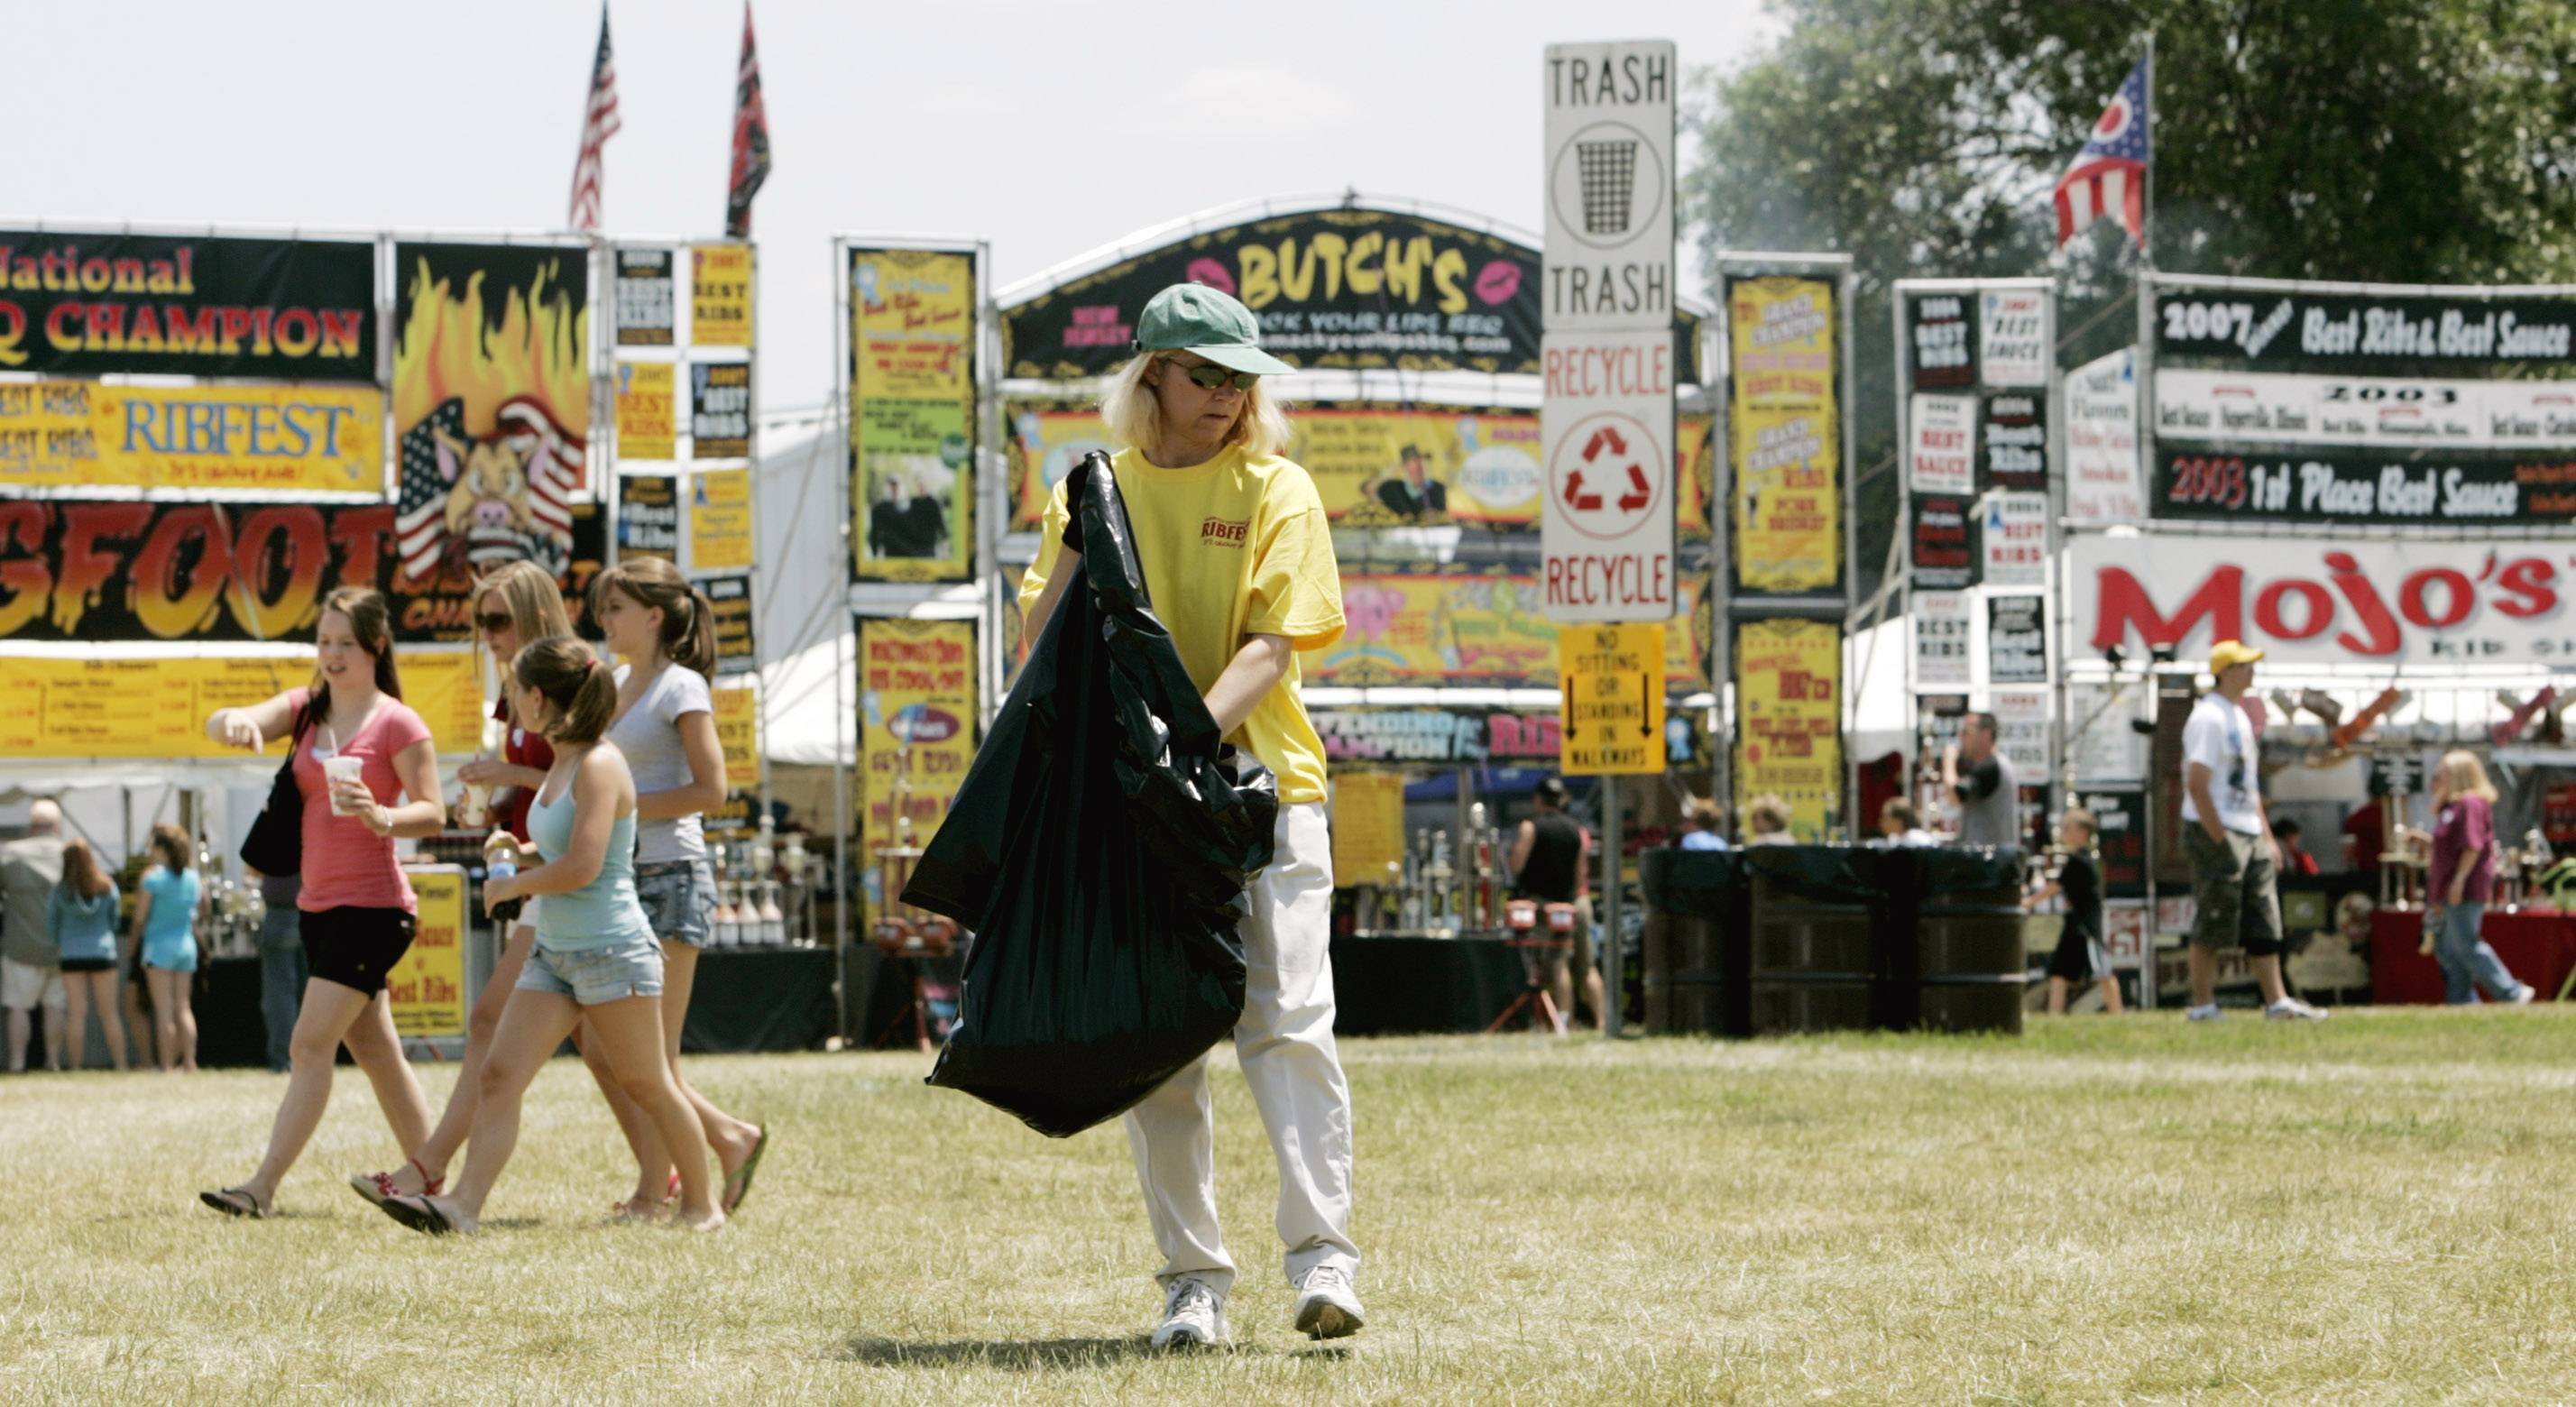 Picking up trash is a common job for many of the 4,000 volunteers Ribfest organizers need to keep the fest running smoothly each year.